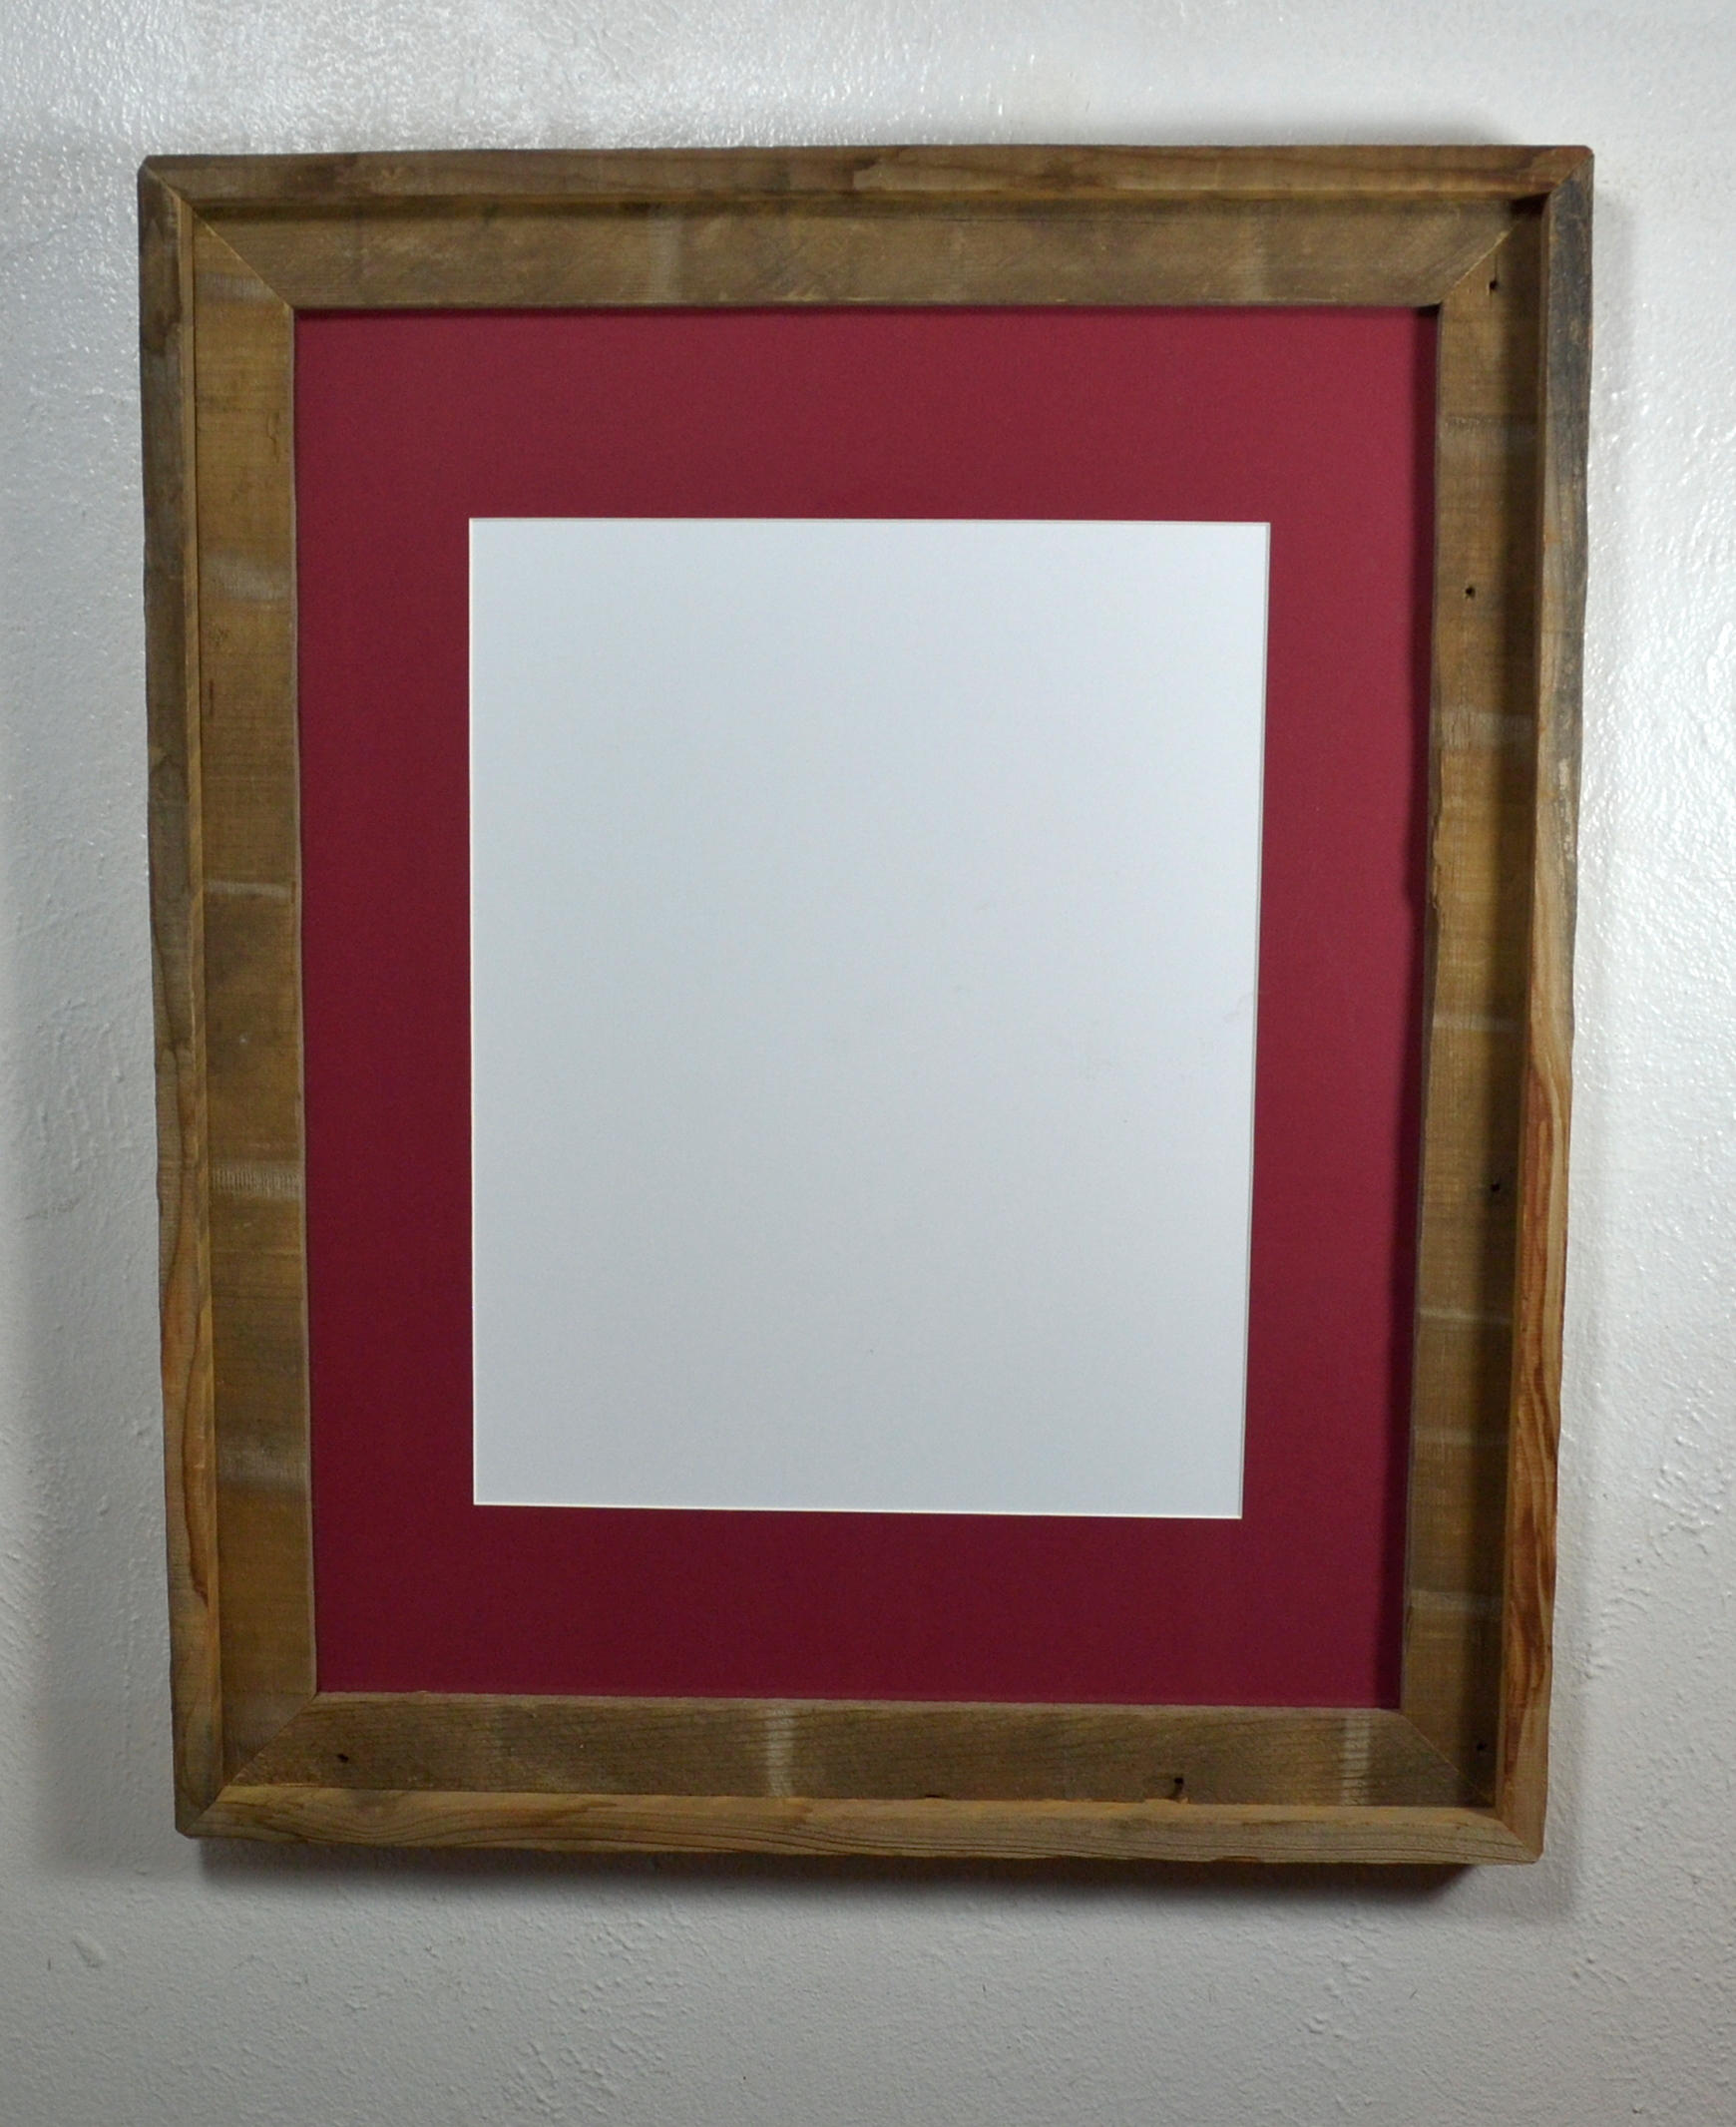 Large Frame Mat 11x14 Cabernet Red Mat In 16x20 Recycled Wood Wall Hung Poster Frame